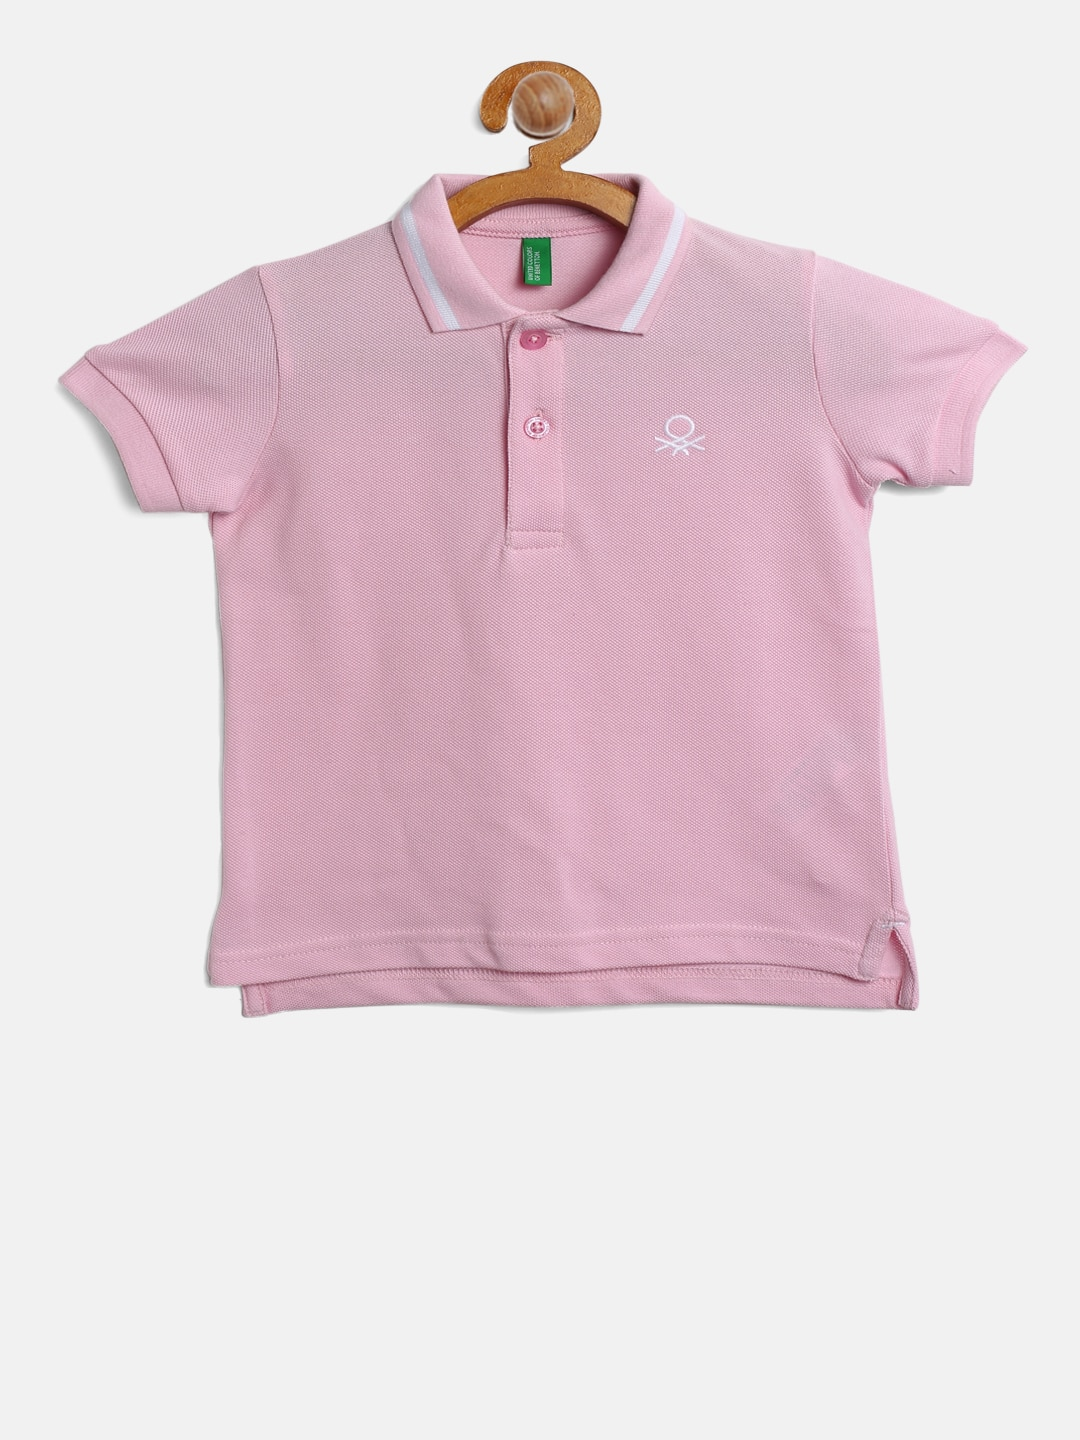 c234718a433a United Colors Of Benetton Boys Apparel - Buy United Colors Of ...